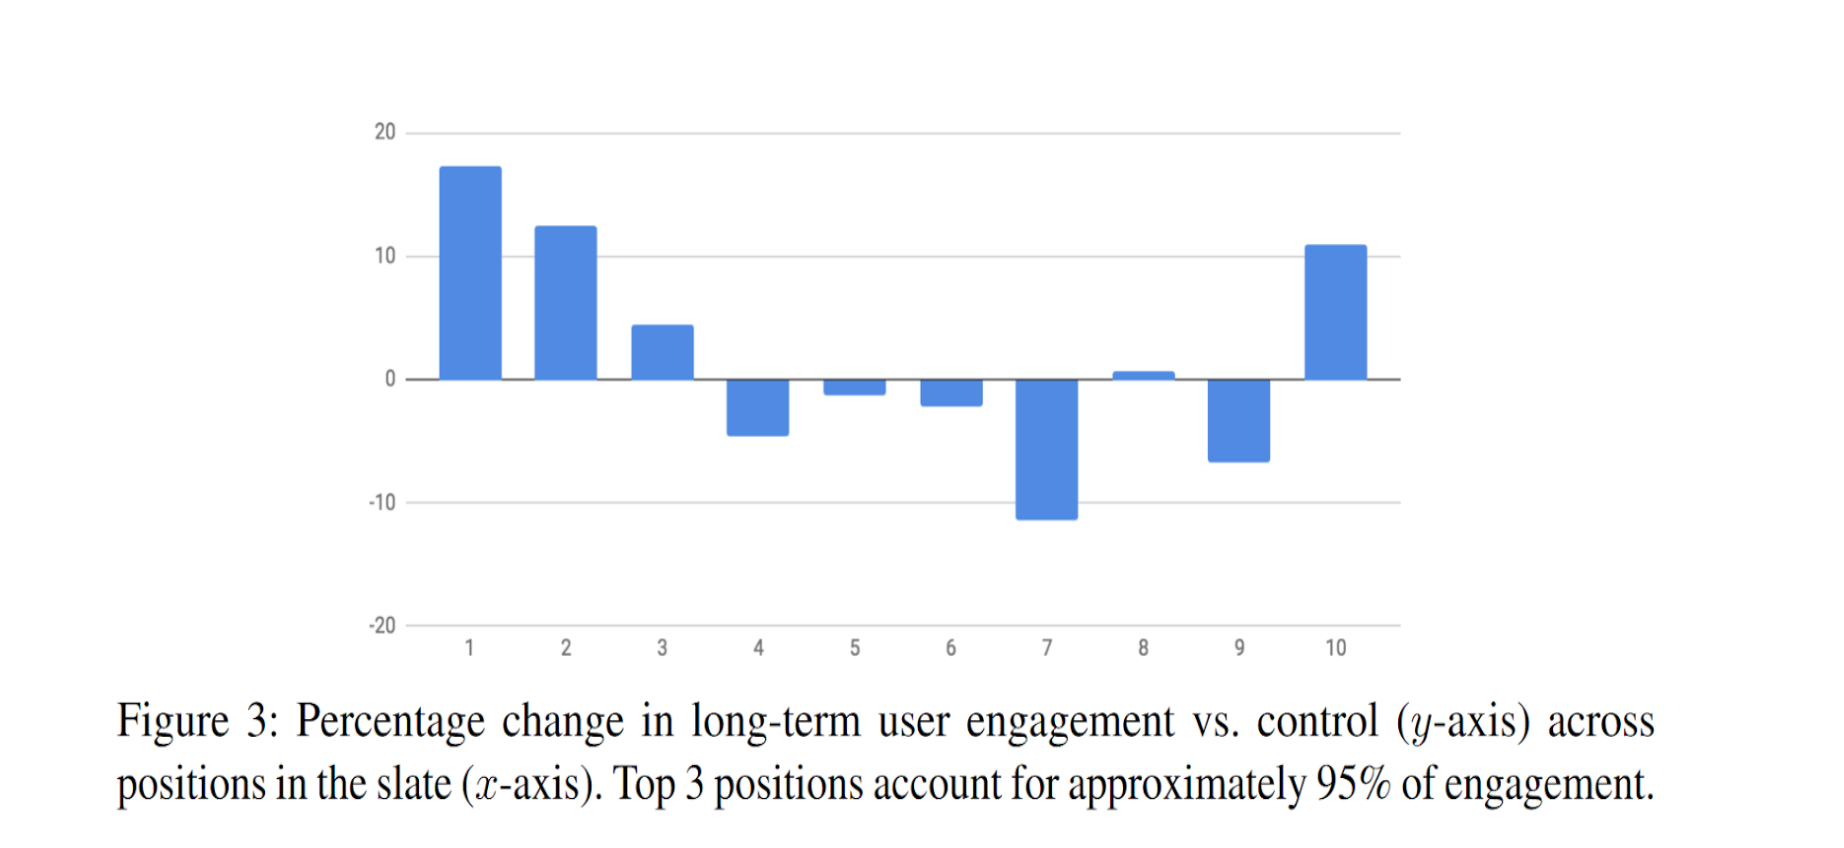 Percentage change in long-term user engagement